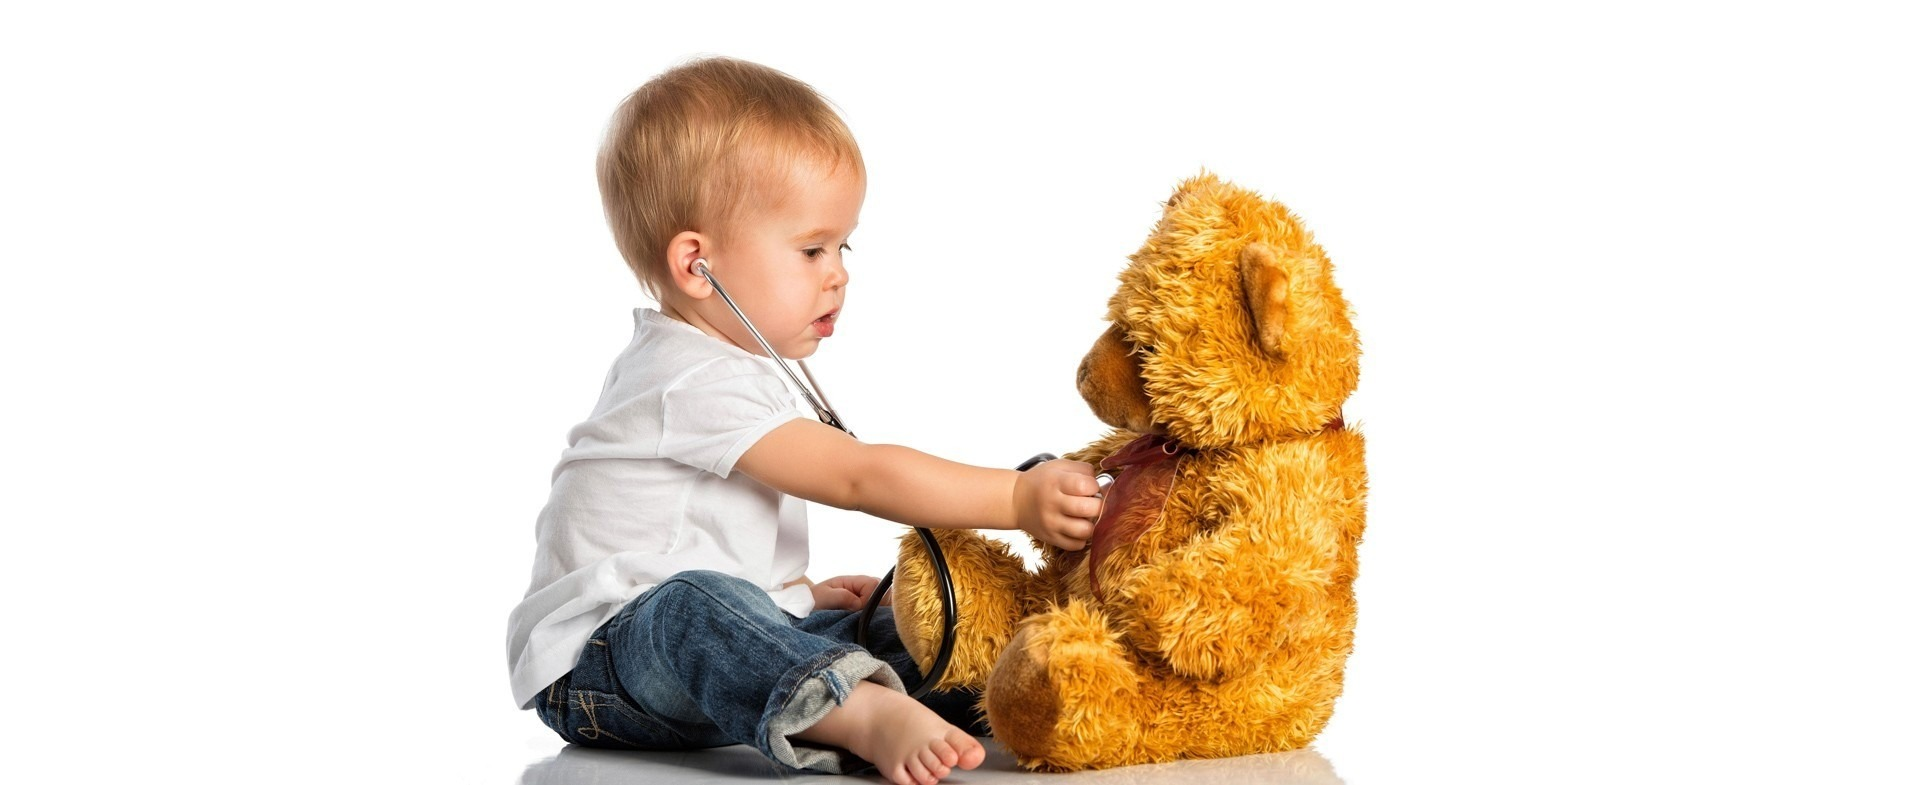 Toddler using a stethoscope to listen to teddy bear's heart